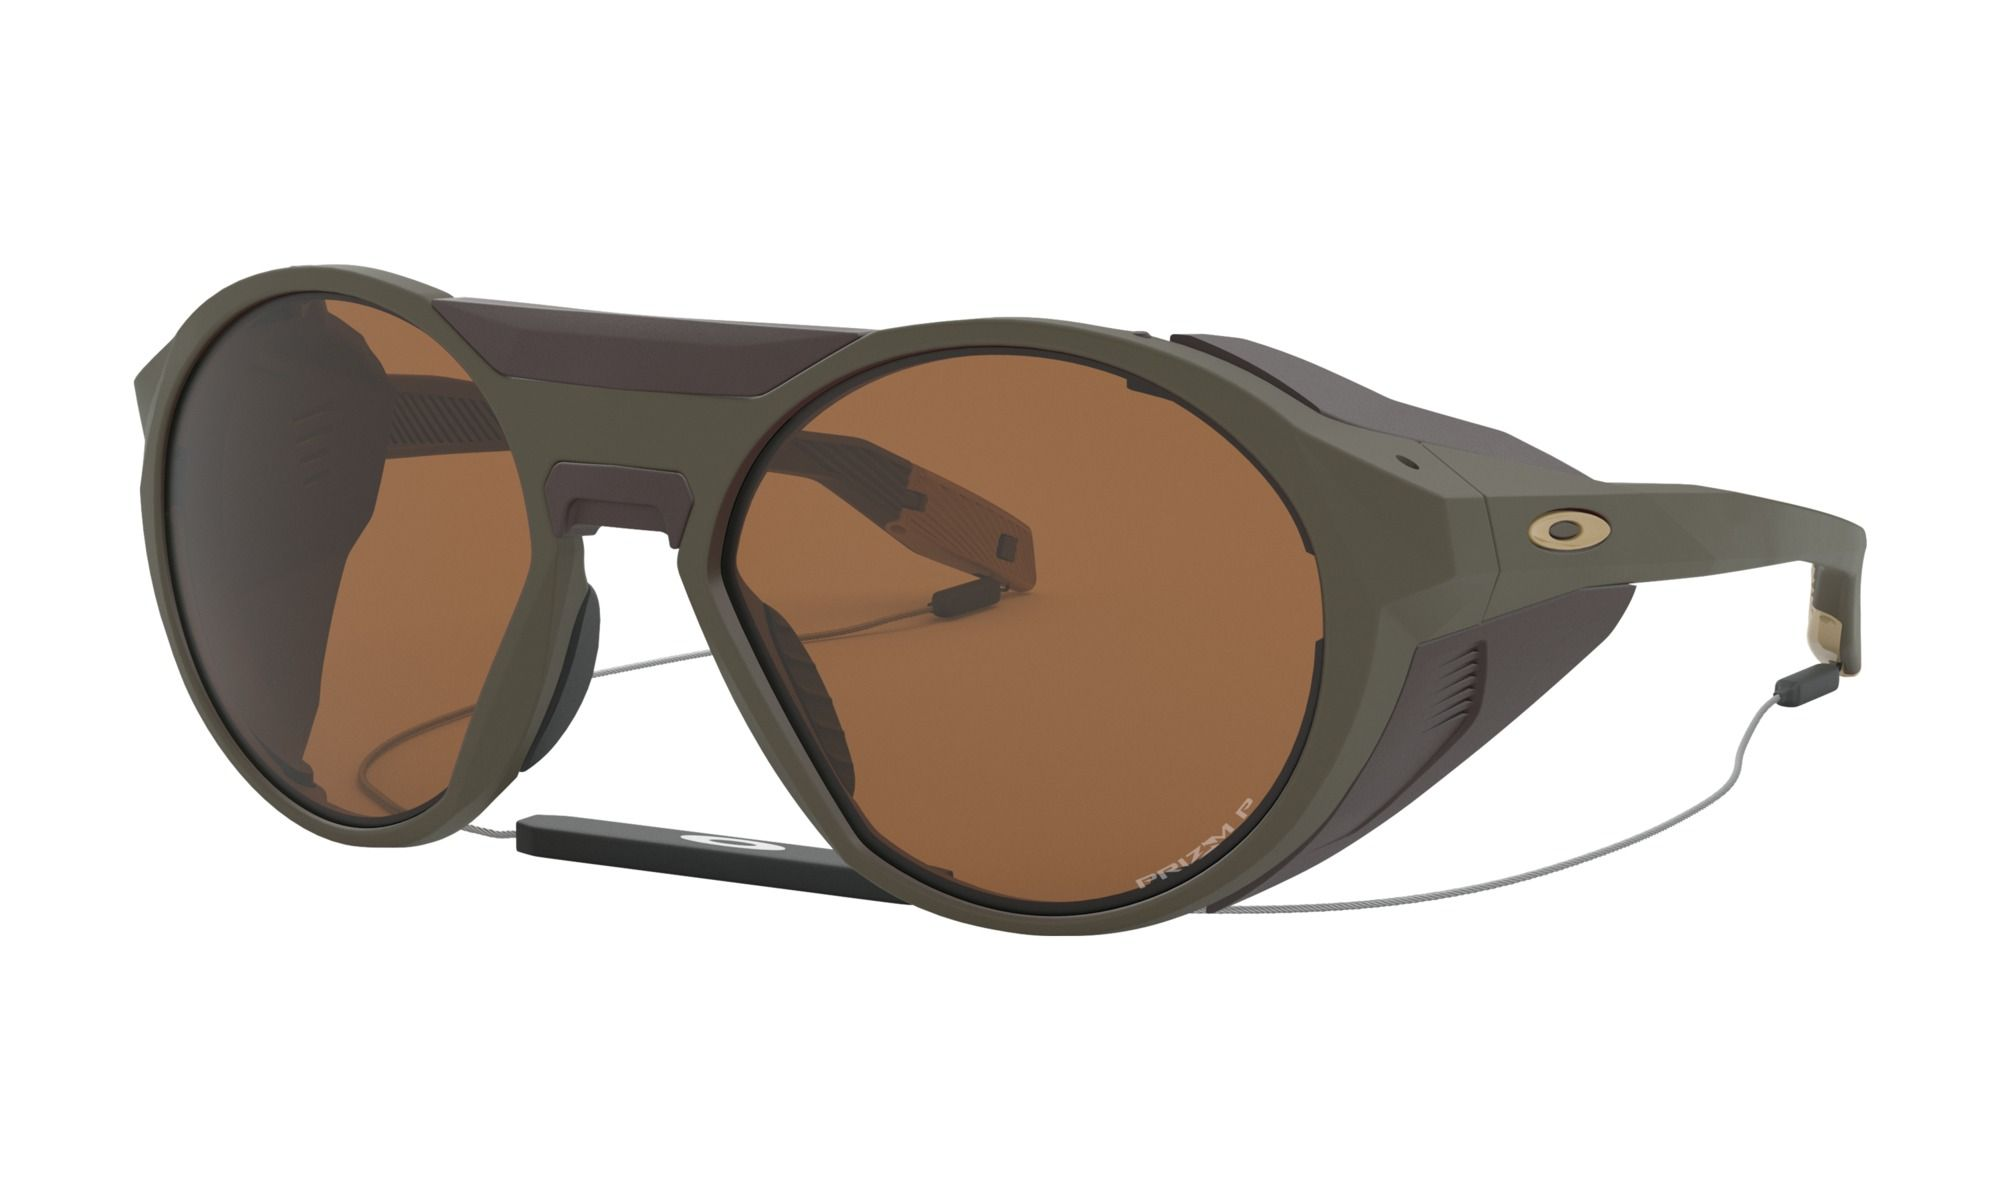 main_oo9440-0456_clifden_matte-olive-green-prizm-tungsten-polarized_001_170187_png_heroxl